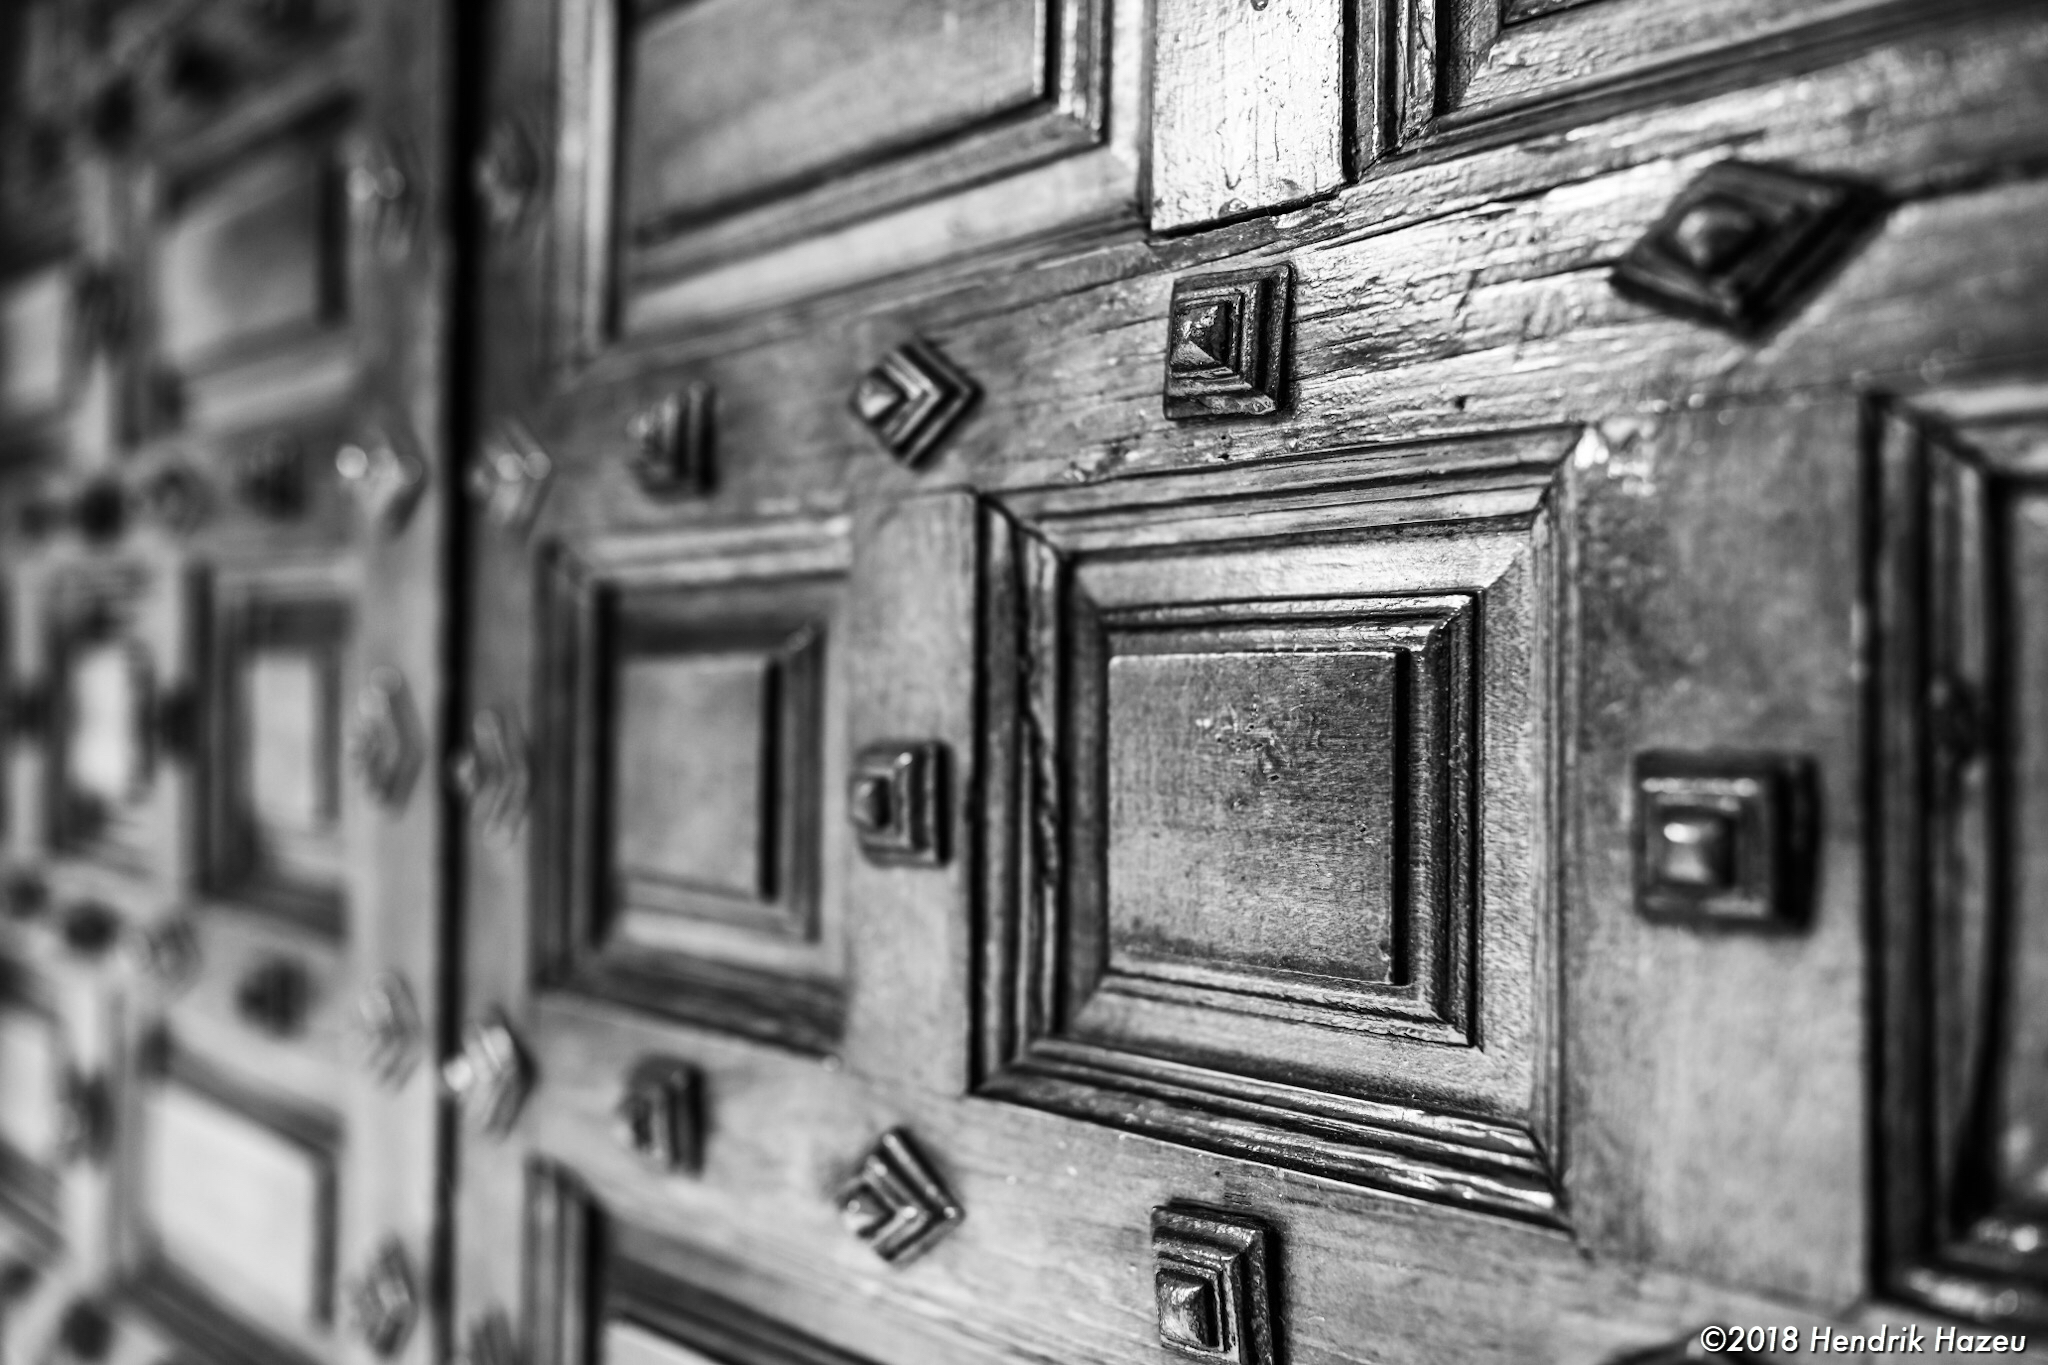 Antique Spanish wooden door, D850 with 28mm f /1.4 @f/2, 1/60sec, ISO 180